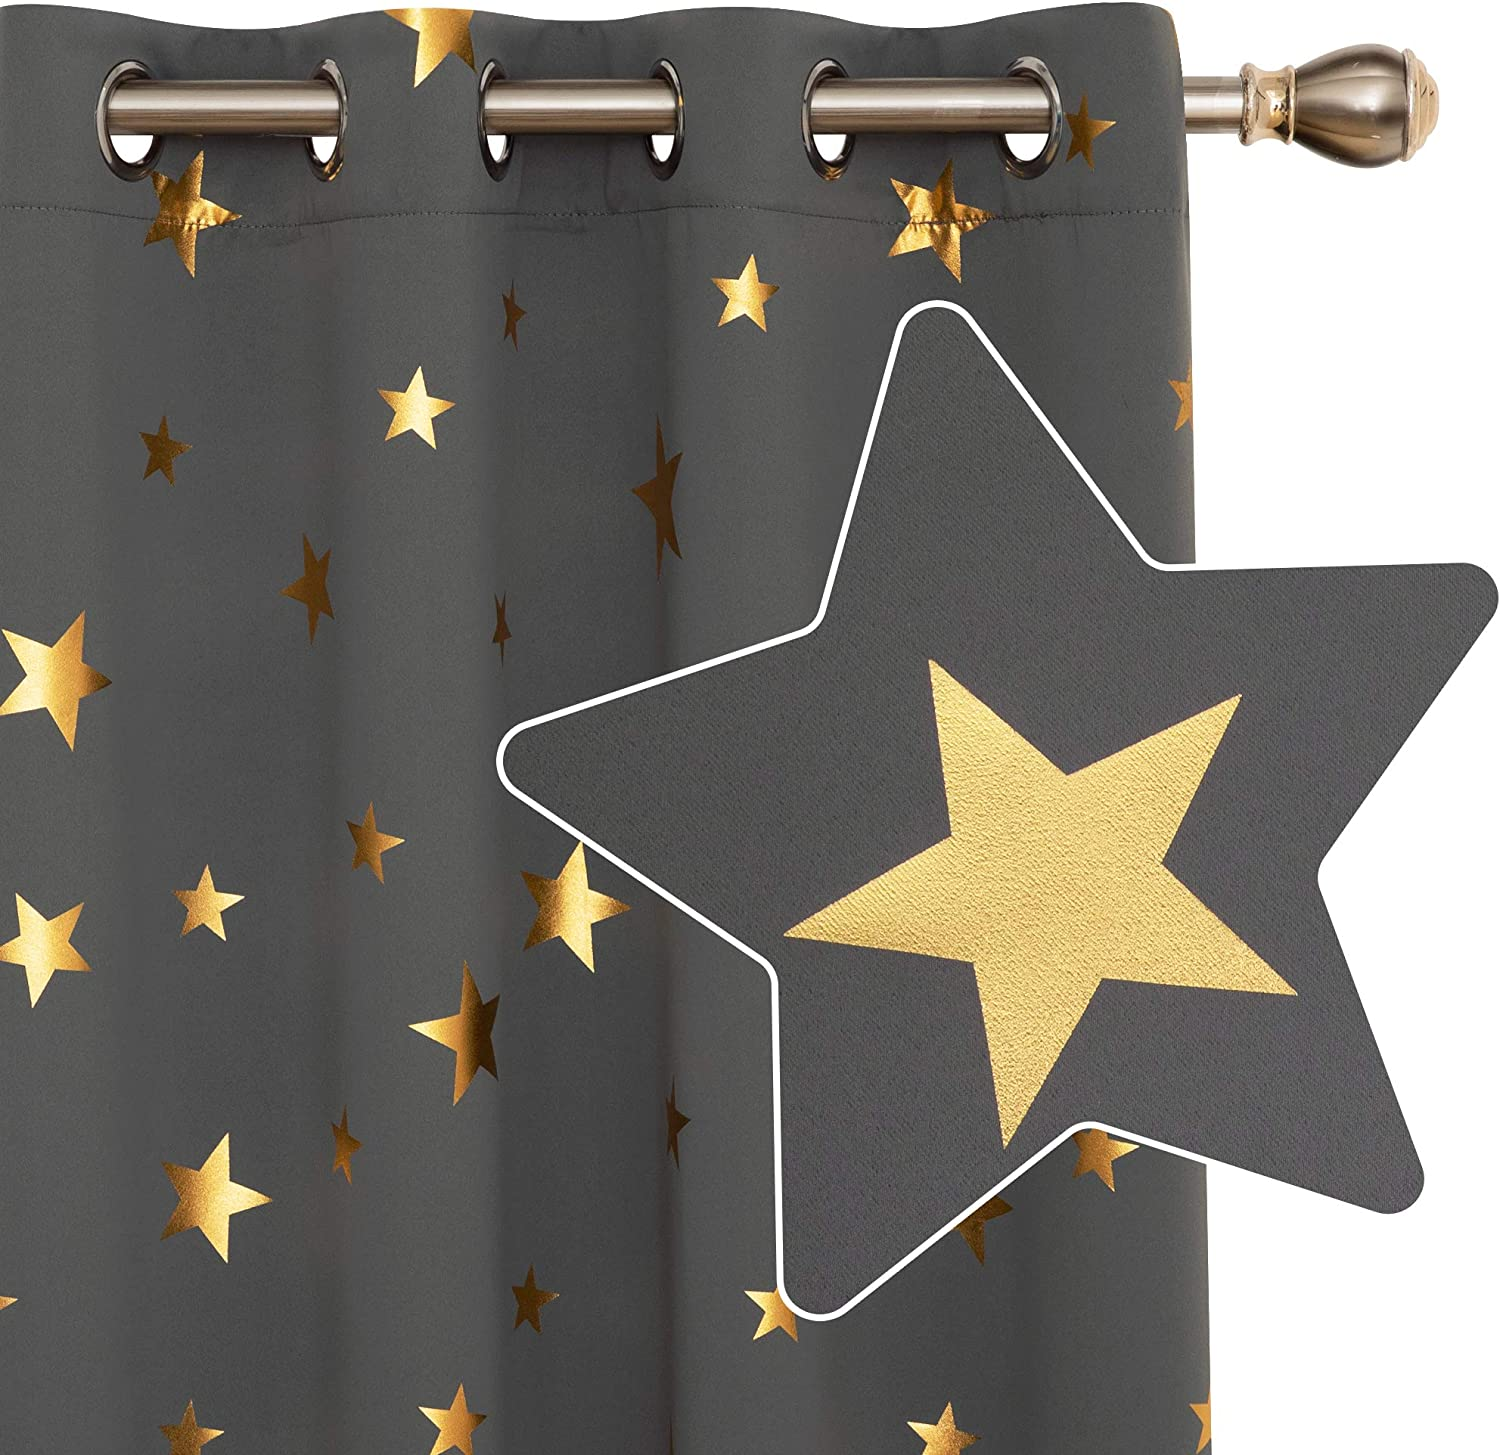 Deconovo Light Grey Curtains for Bedroom, Thermal Insulated Gold Star Foil Printed, Eyelet Blackout Curtains for Living Room, 46 x 54 Inch(Width x Length), 2 Panels W46 x L54 Light Grey